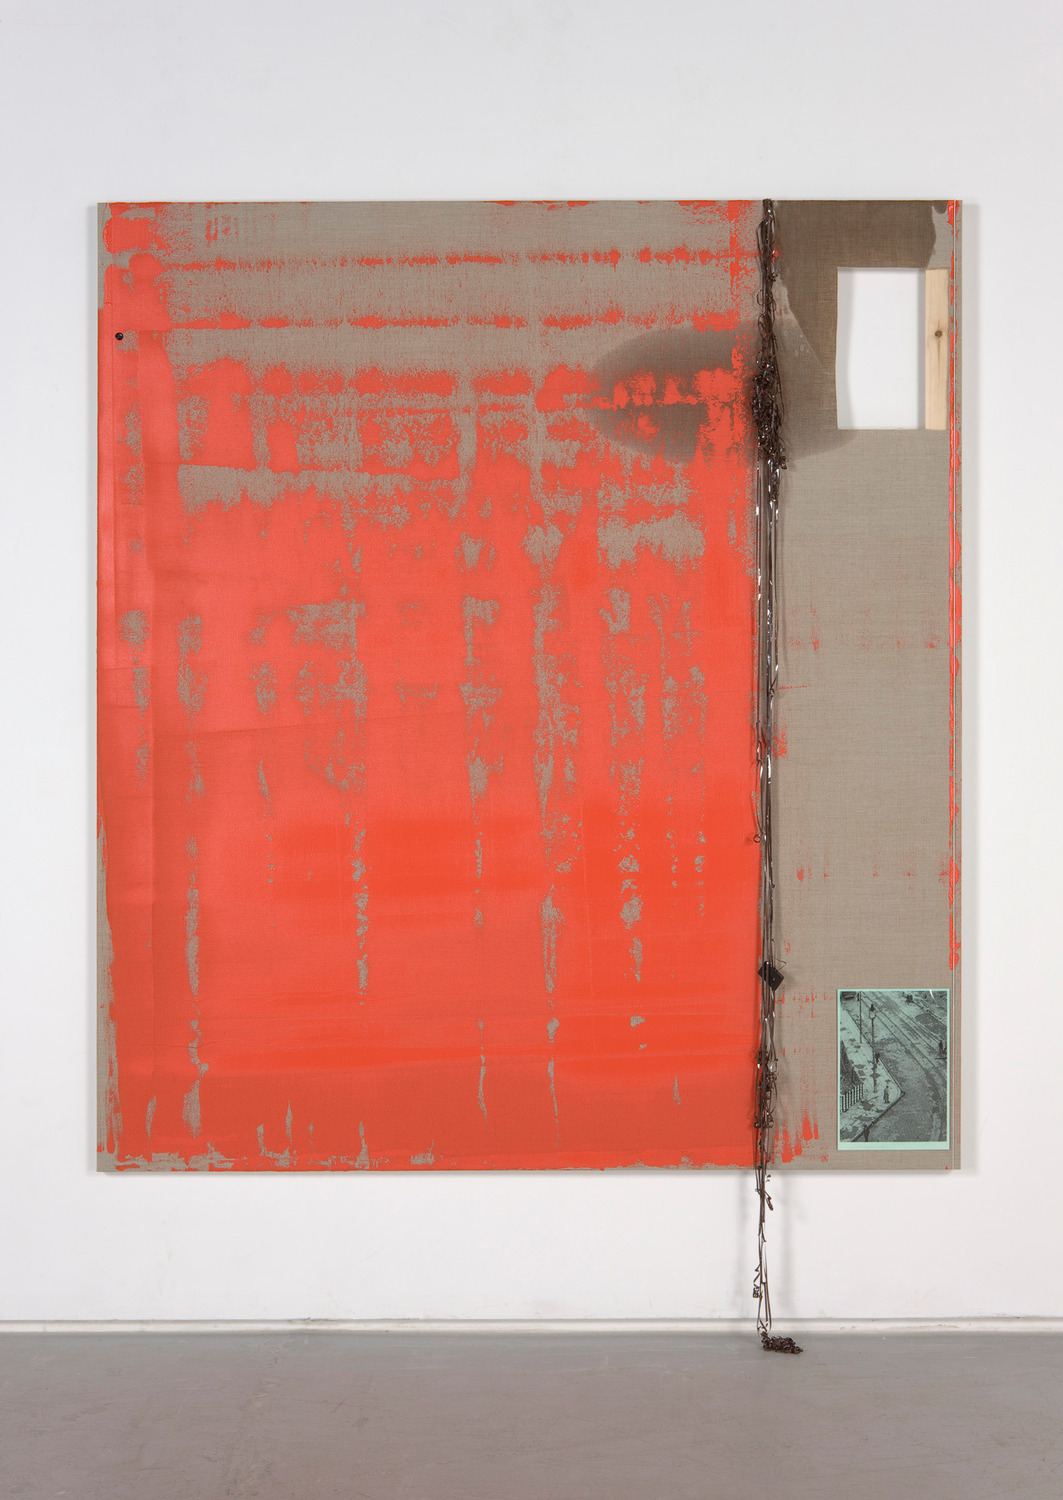 Dresden 5, 2012, Acrylic, beeswax, oil, string, digital print with verdigris, card, cellophane, button, audio-tape on linen, 190 x 170 x 3 cm